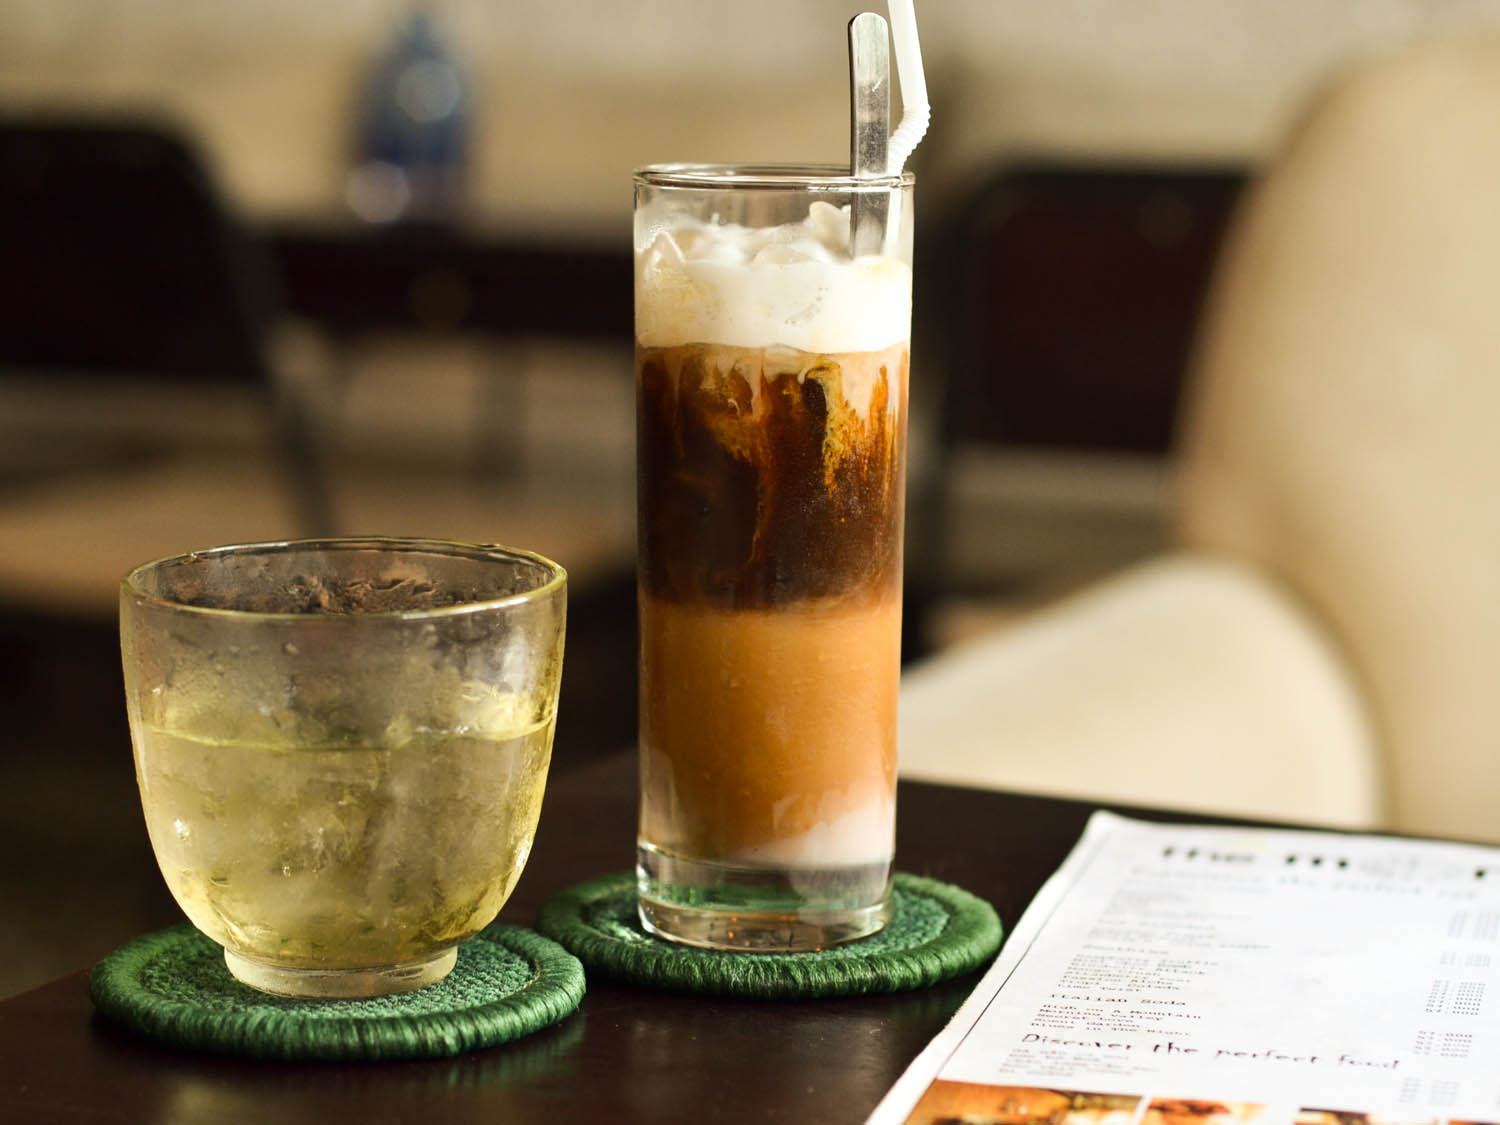 20140805-vietnam-drinks-ca-phe-sua-da-barbara-adam